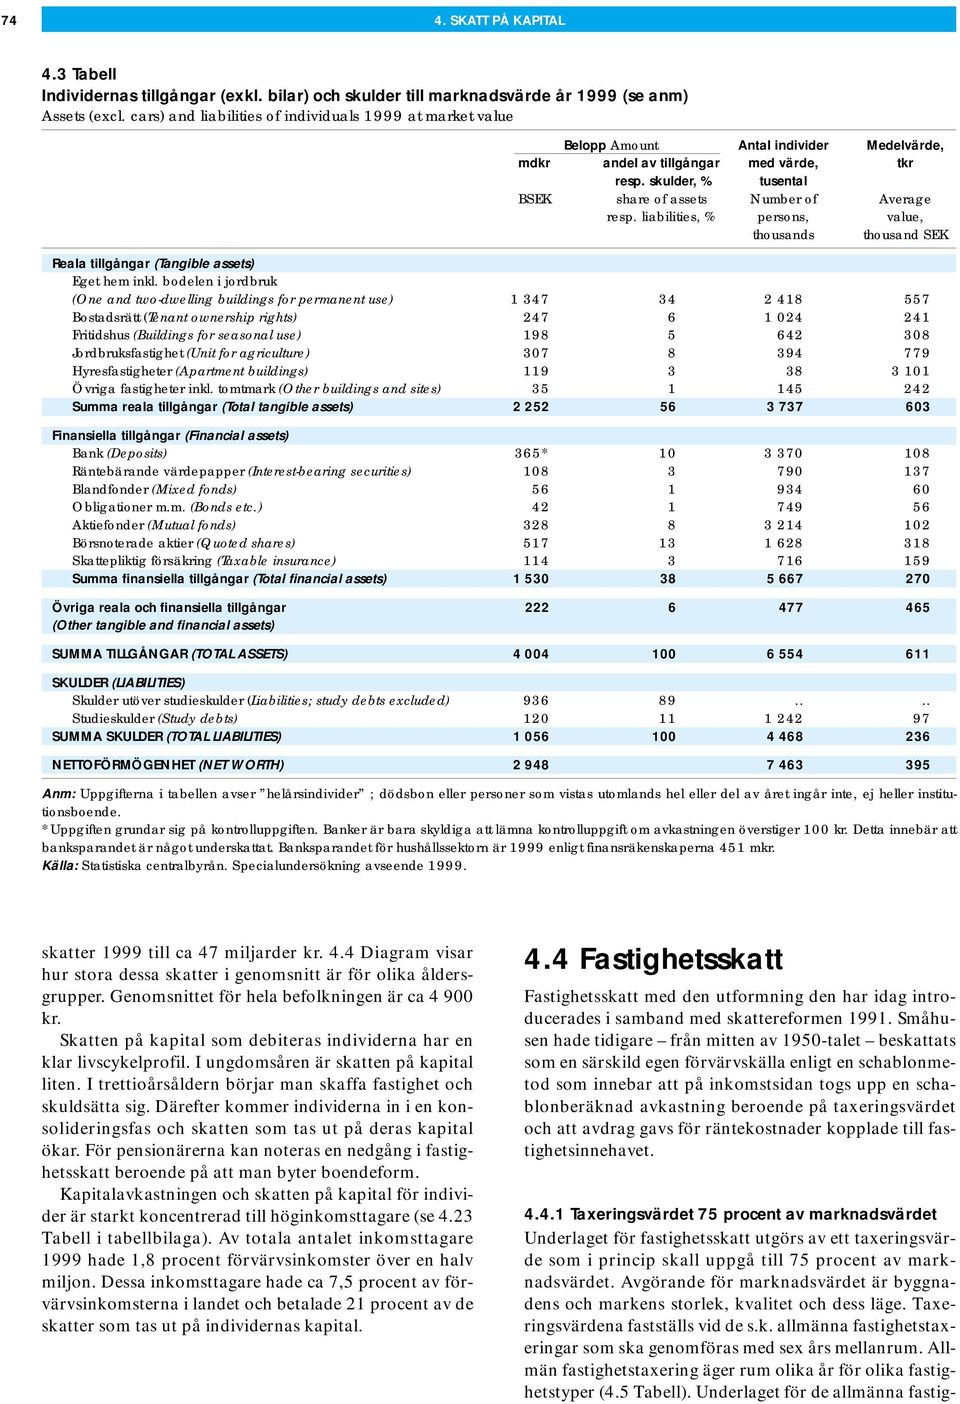 skulder, % tusental BSEK share of assets Number of Average resp. liabilities, % persons, value, thousands thousand SEK Reala tillgångar (Tangible assets) Eget hem inkl.